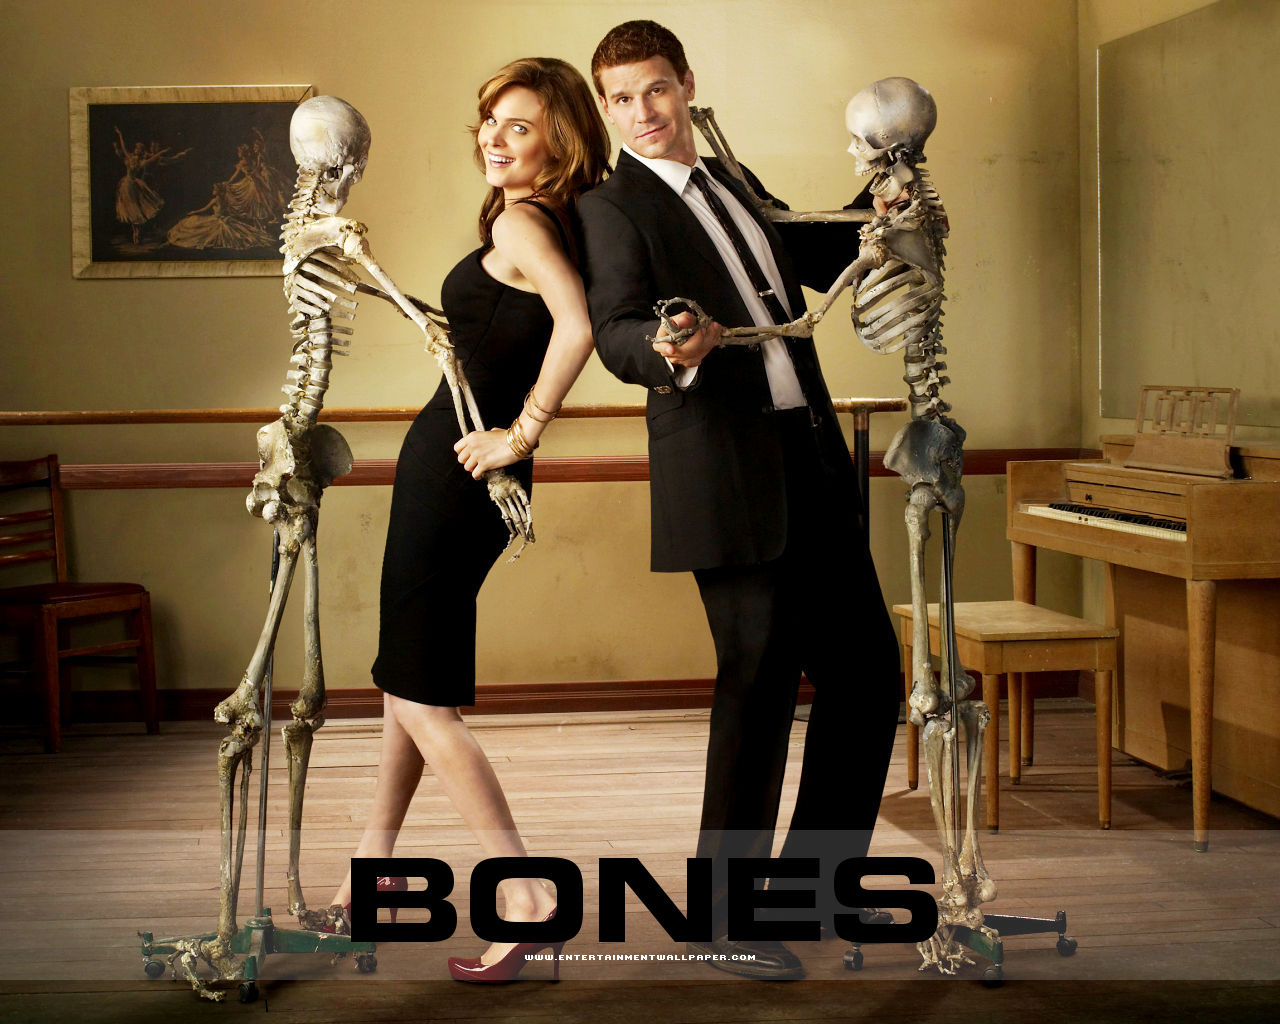 http://primetimeaddiction.files.wordpress.com/2012/11/tv_bones12-1.jpeg Crossbones Tv Show